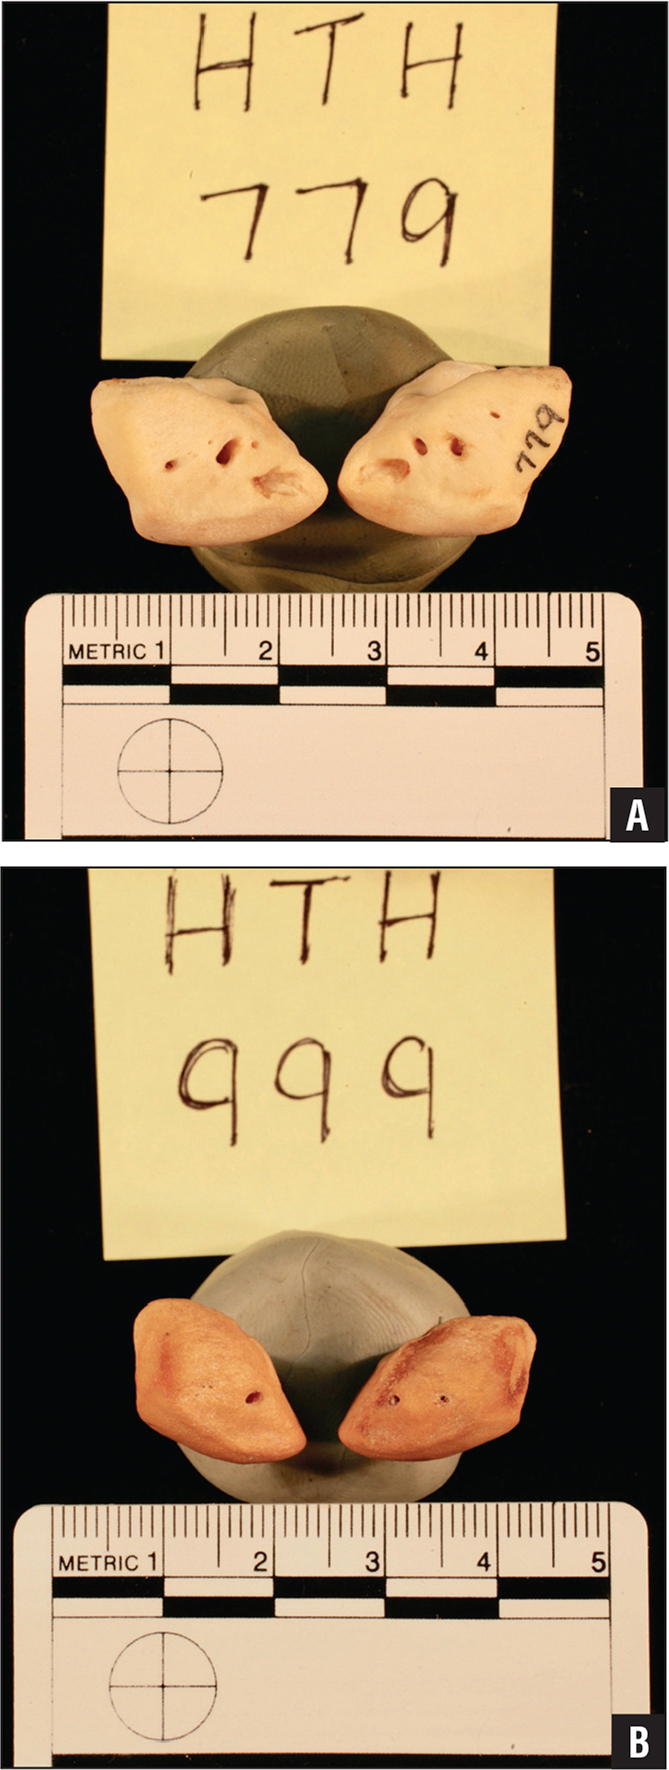 Anterior view photographs of the nutrient artery foramina of the right and left lunate bones from the volar aspect in 2 randomly selected specimens: HTH 779 (A) and HTH 999 (B).